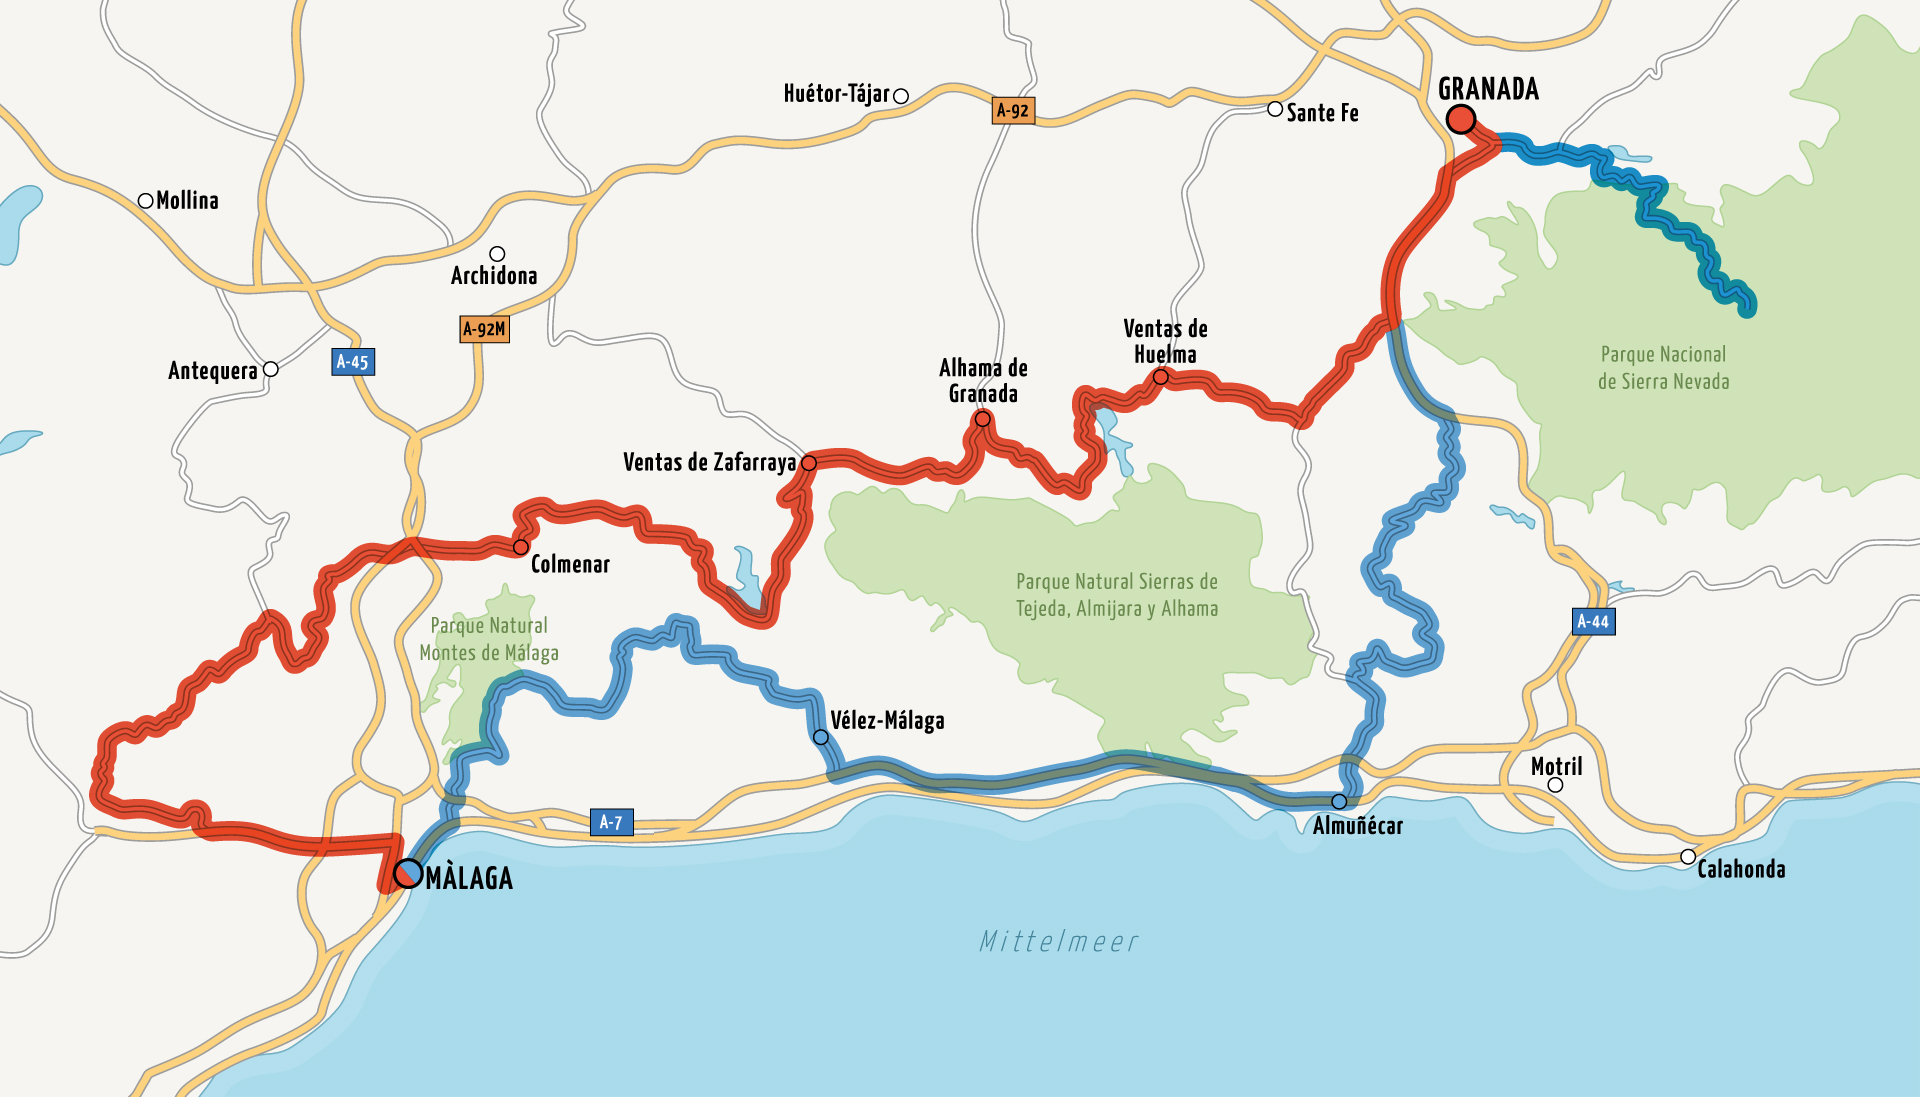 Itinerary around Malaga, Andalusia